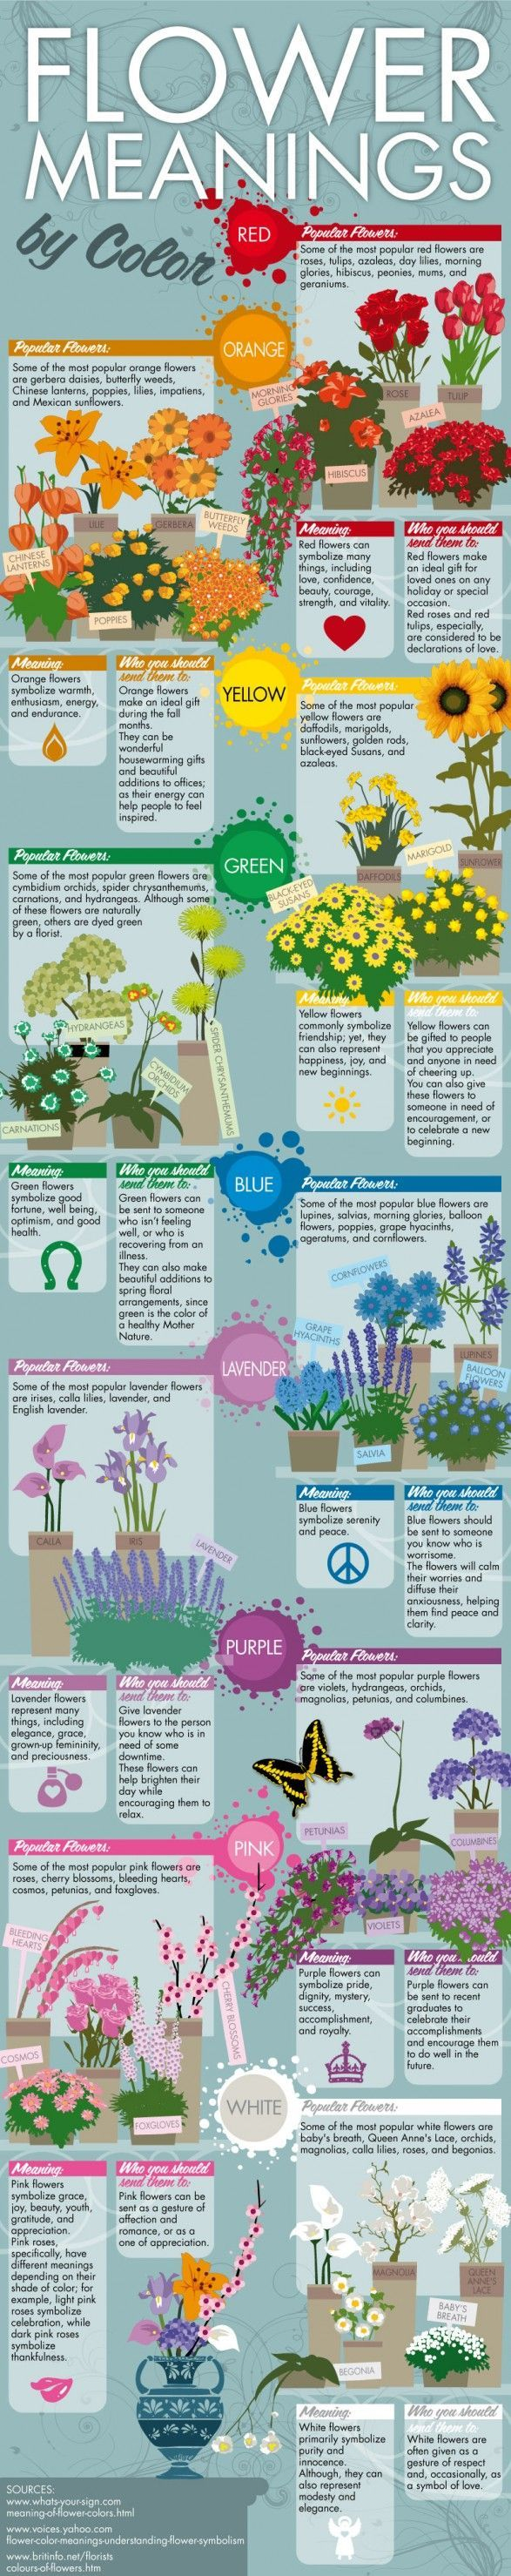 45 best flower meaning images on pinterest beautiful flowers its about all the meanings of various flowers why not use this to help pick out flowers for your wedding flower meanings by color buycottarizona